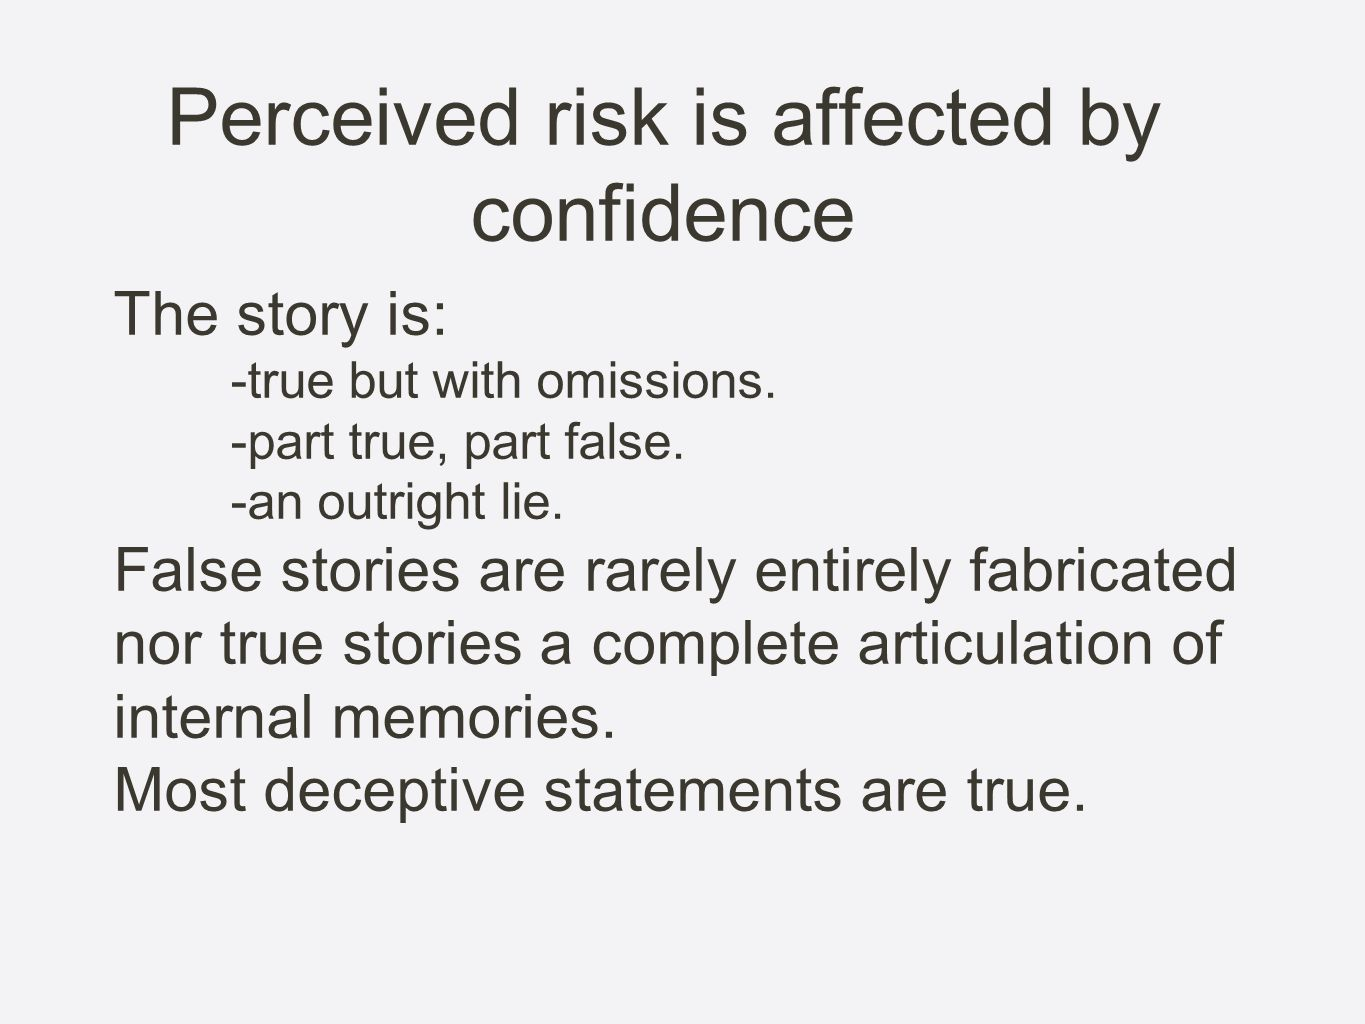 Perceived risk is affected by confidence